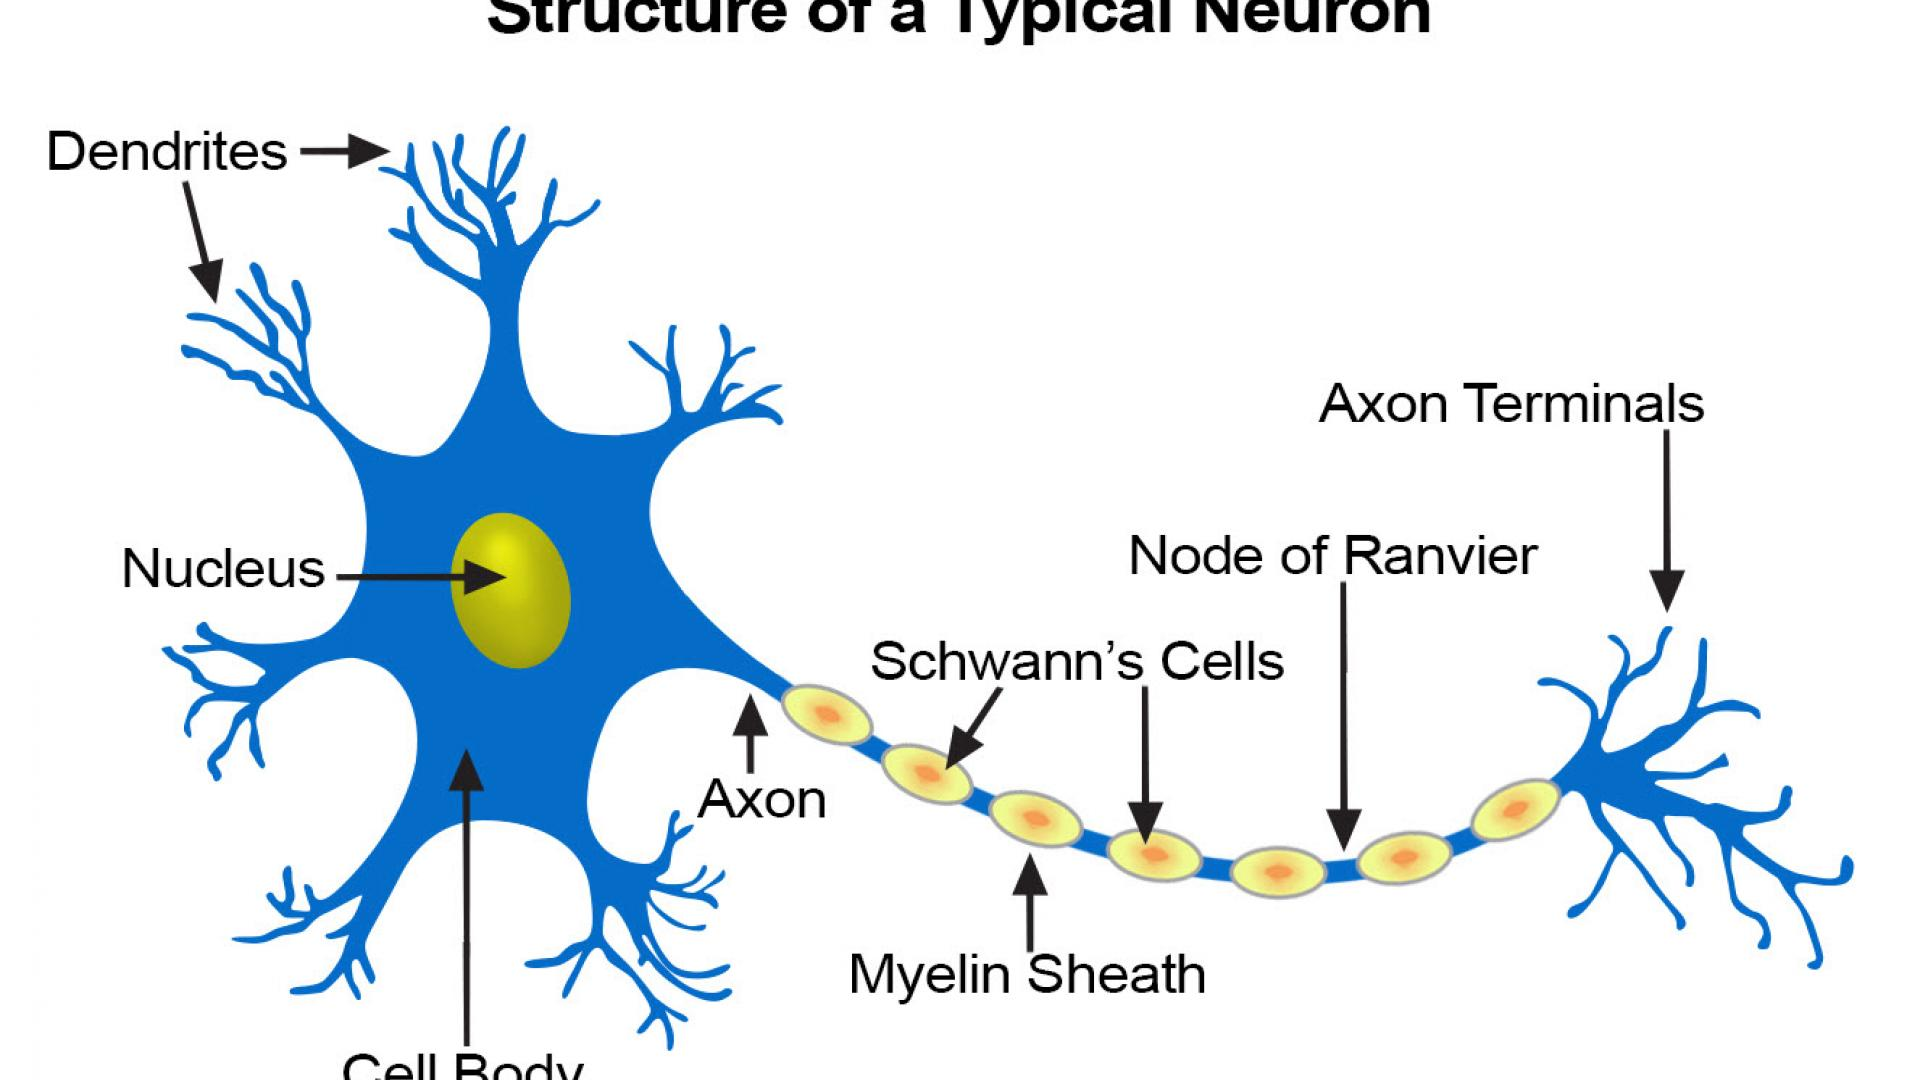 Structure of a typical neuron